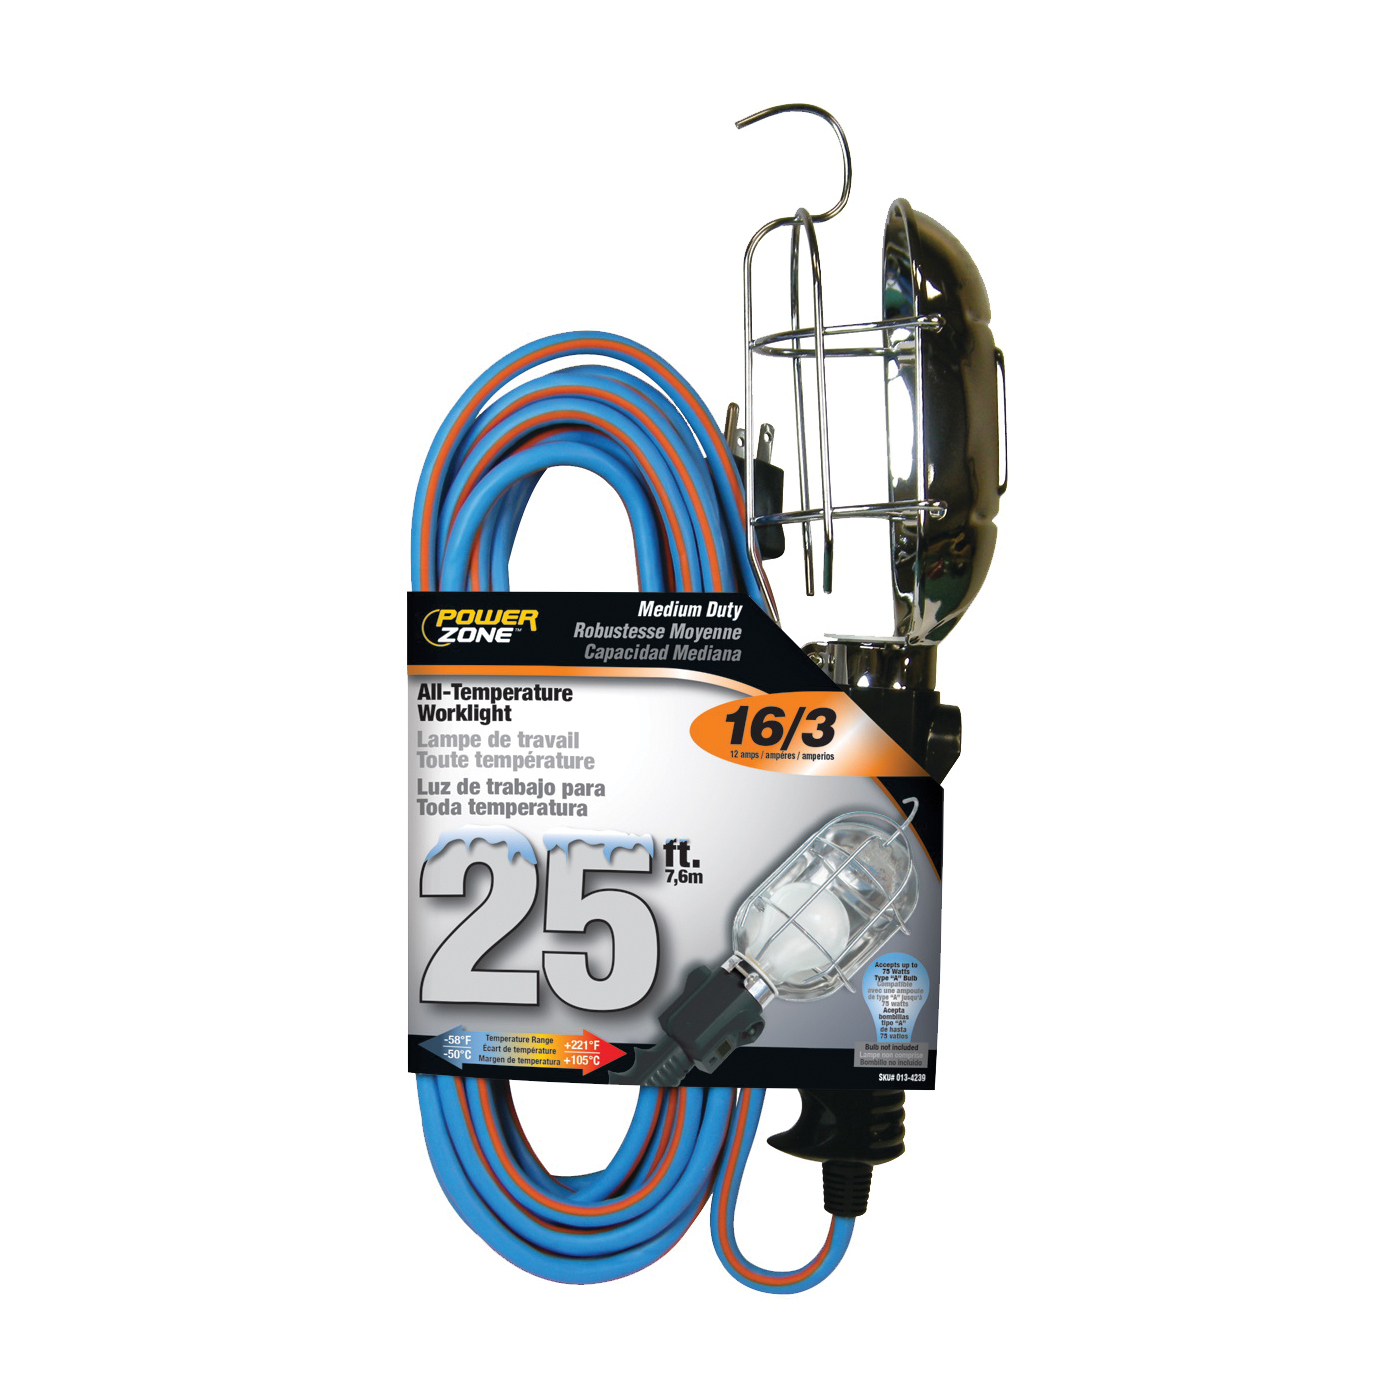 Picture of PowerZone ORTL020625 Work Light, 12 A, 125 V, Incandescent Lamp, Blue